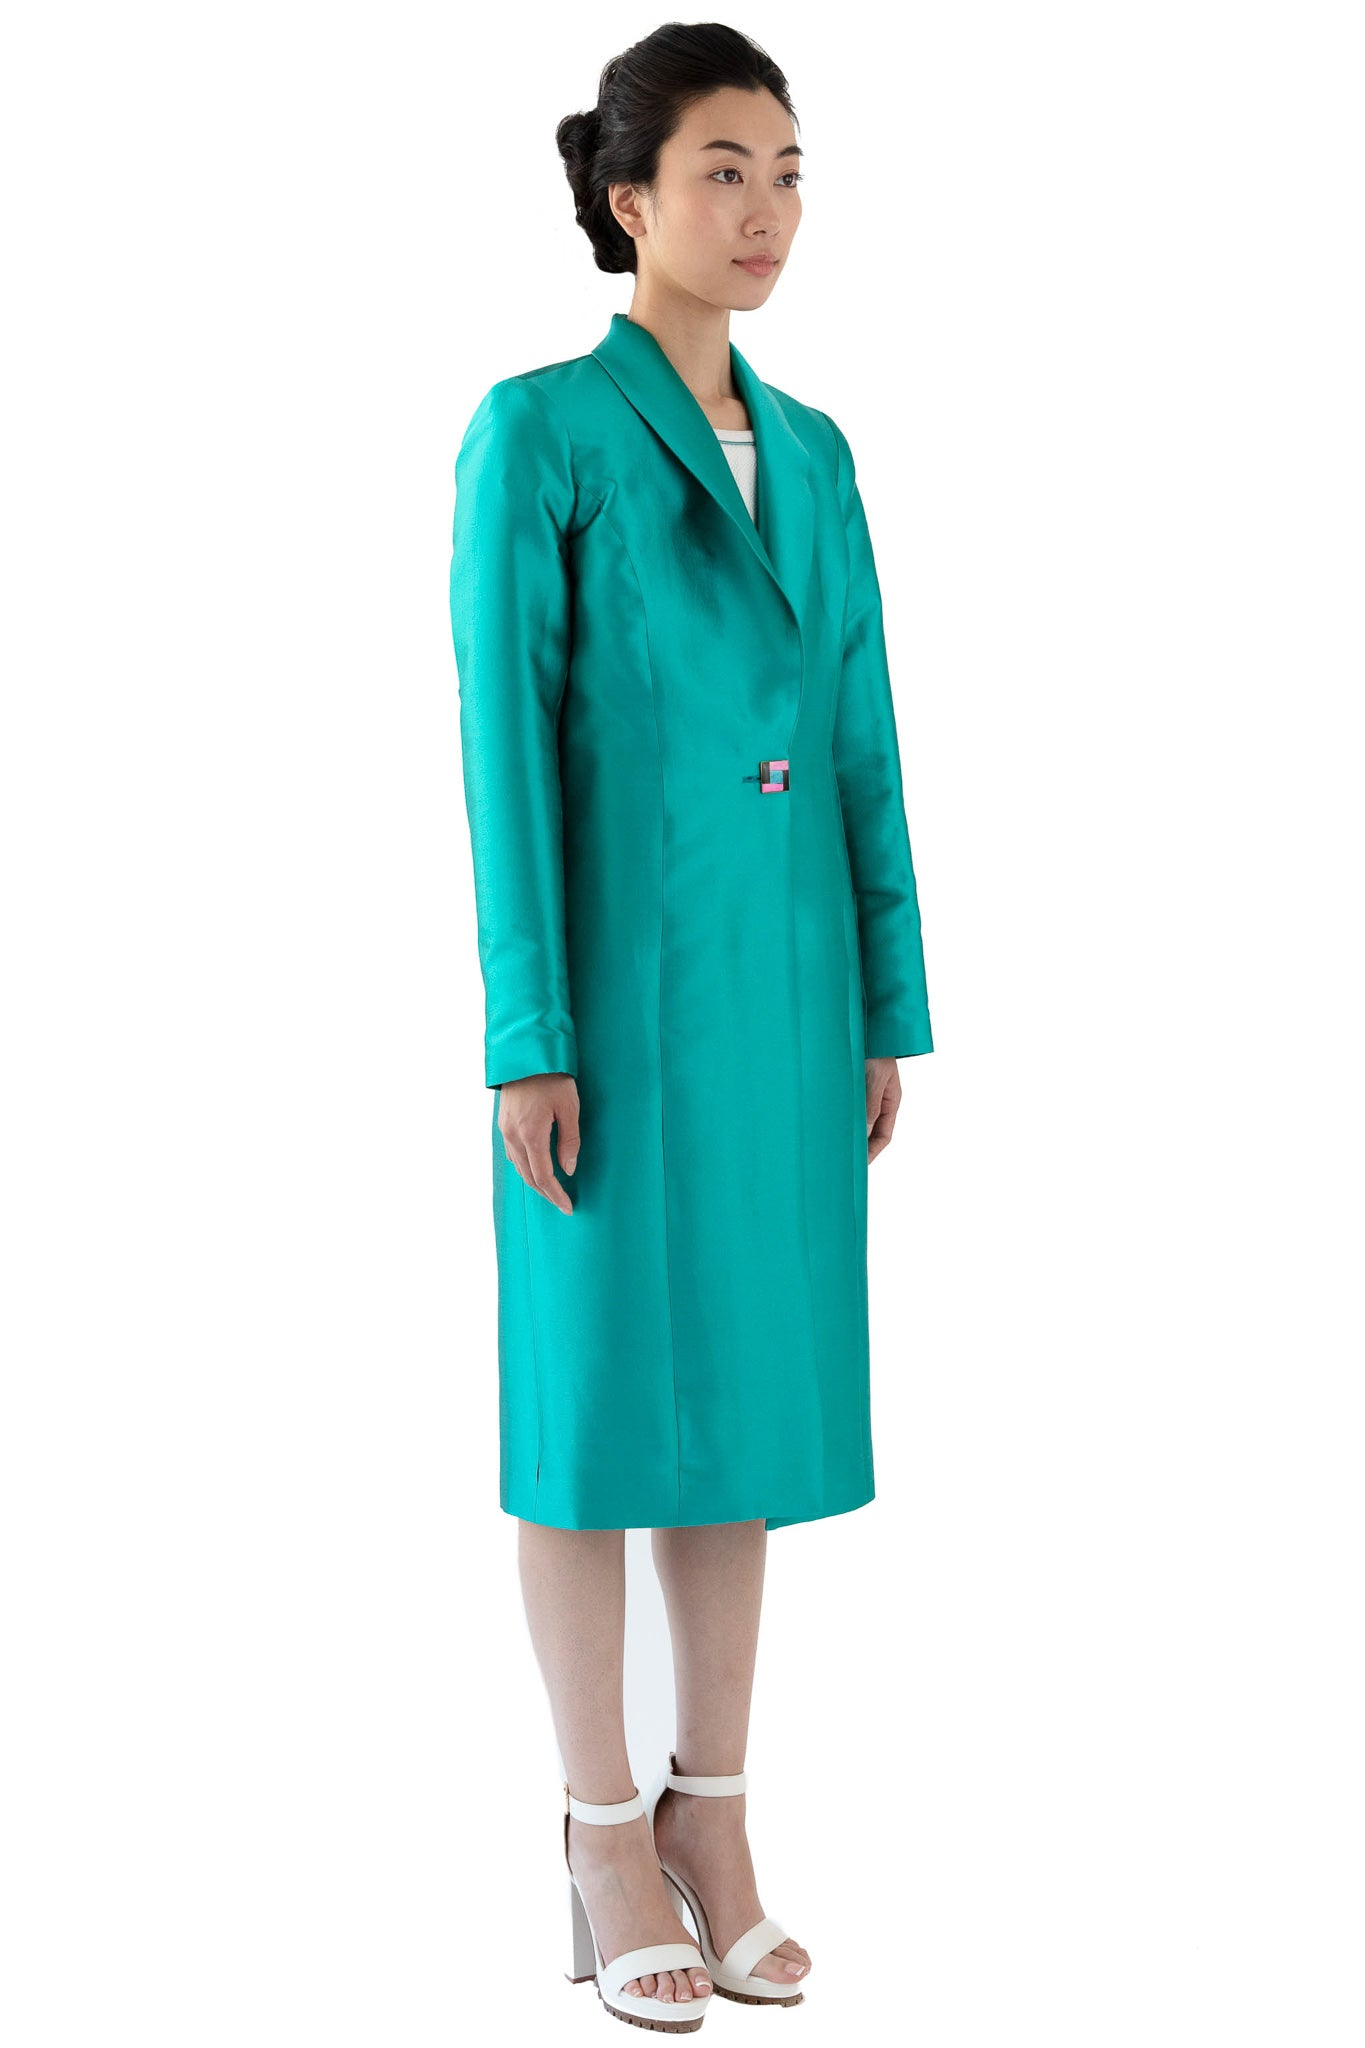 Women's silk wool turquoise coat